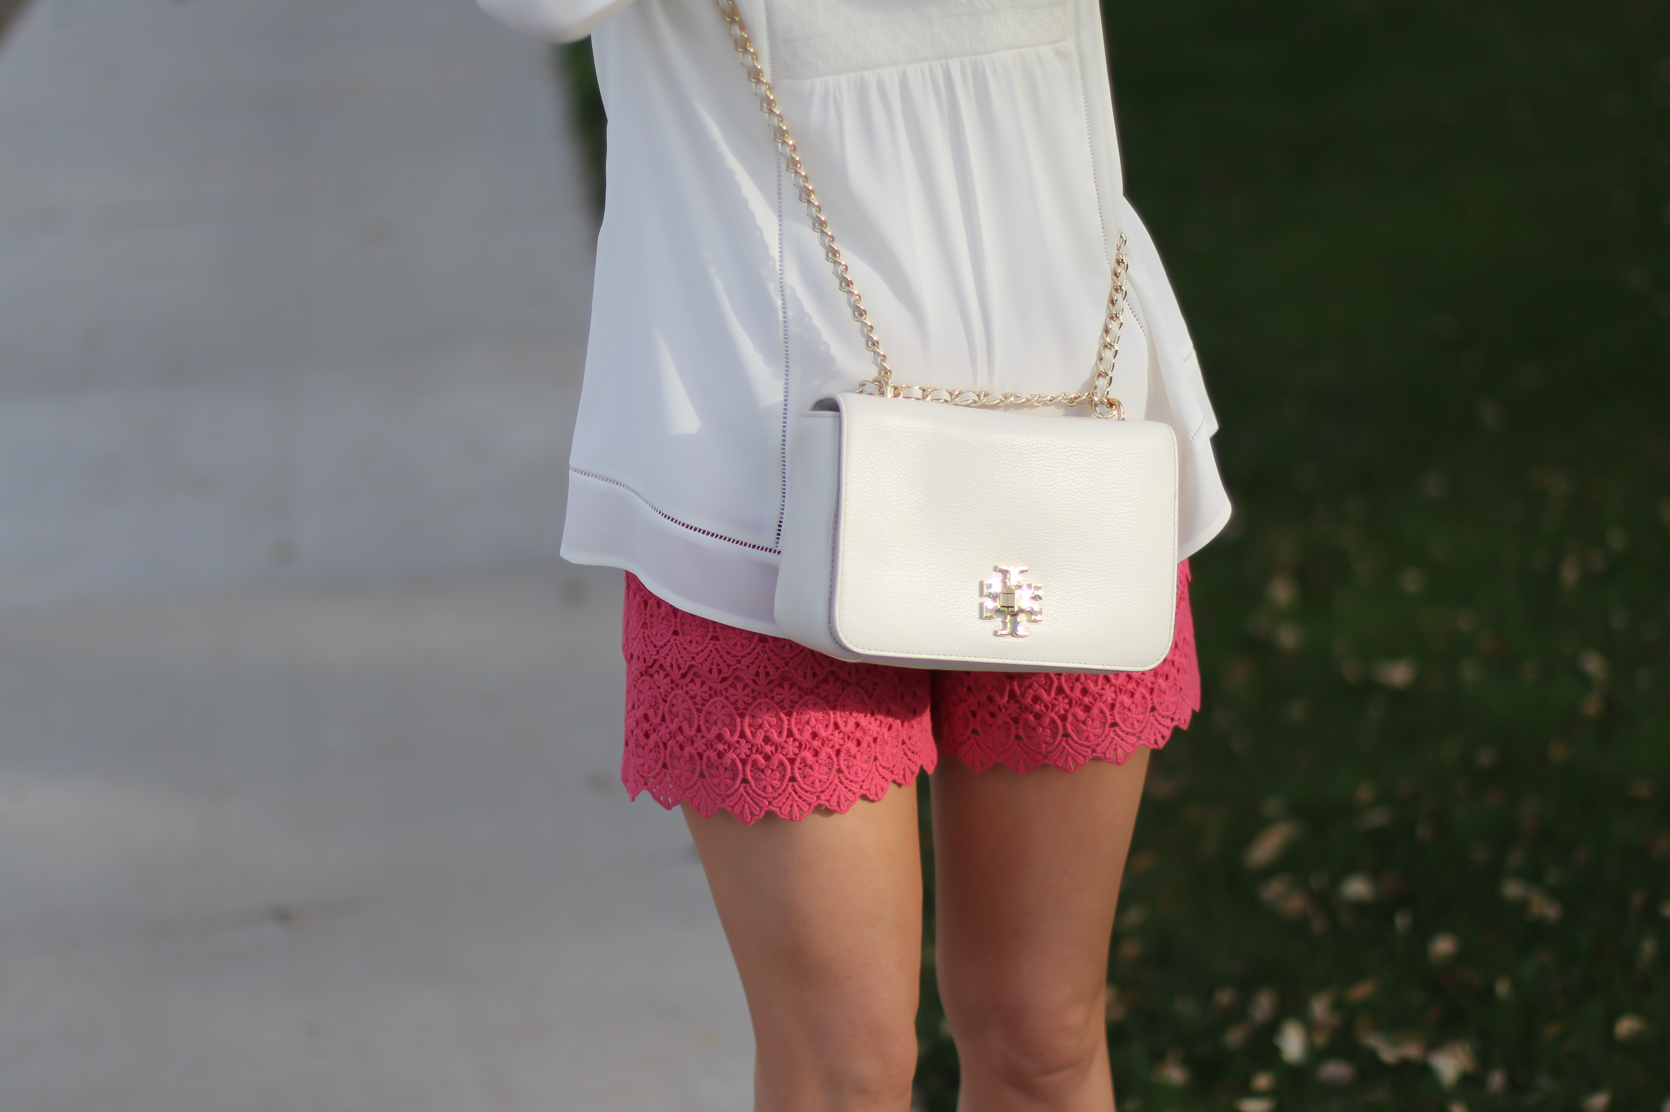 Coral Lace Shorts, Ivory Bib Blouse, Tan Espadrille Sandals, Ivory Chain Strap Bag, Loft, Banana Republic, Seychelles, Tory Burch 12